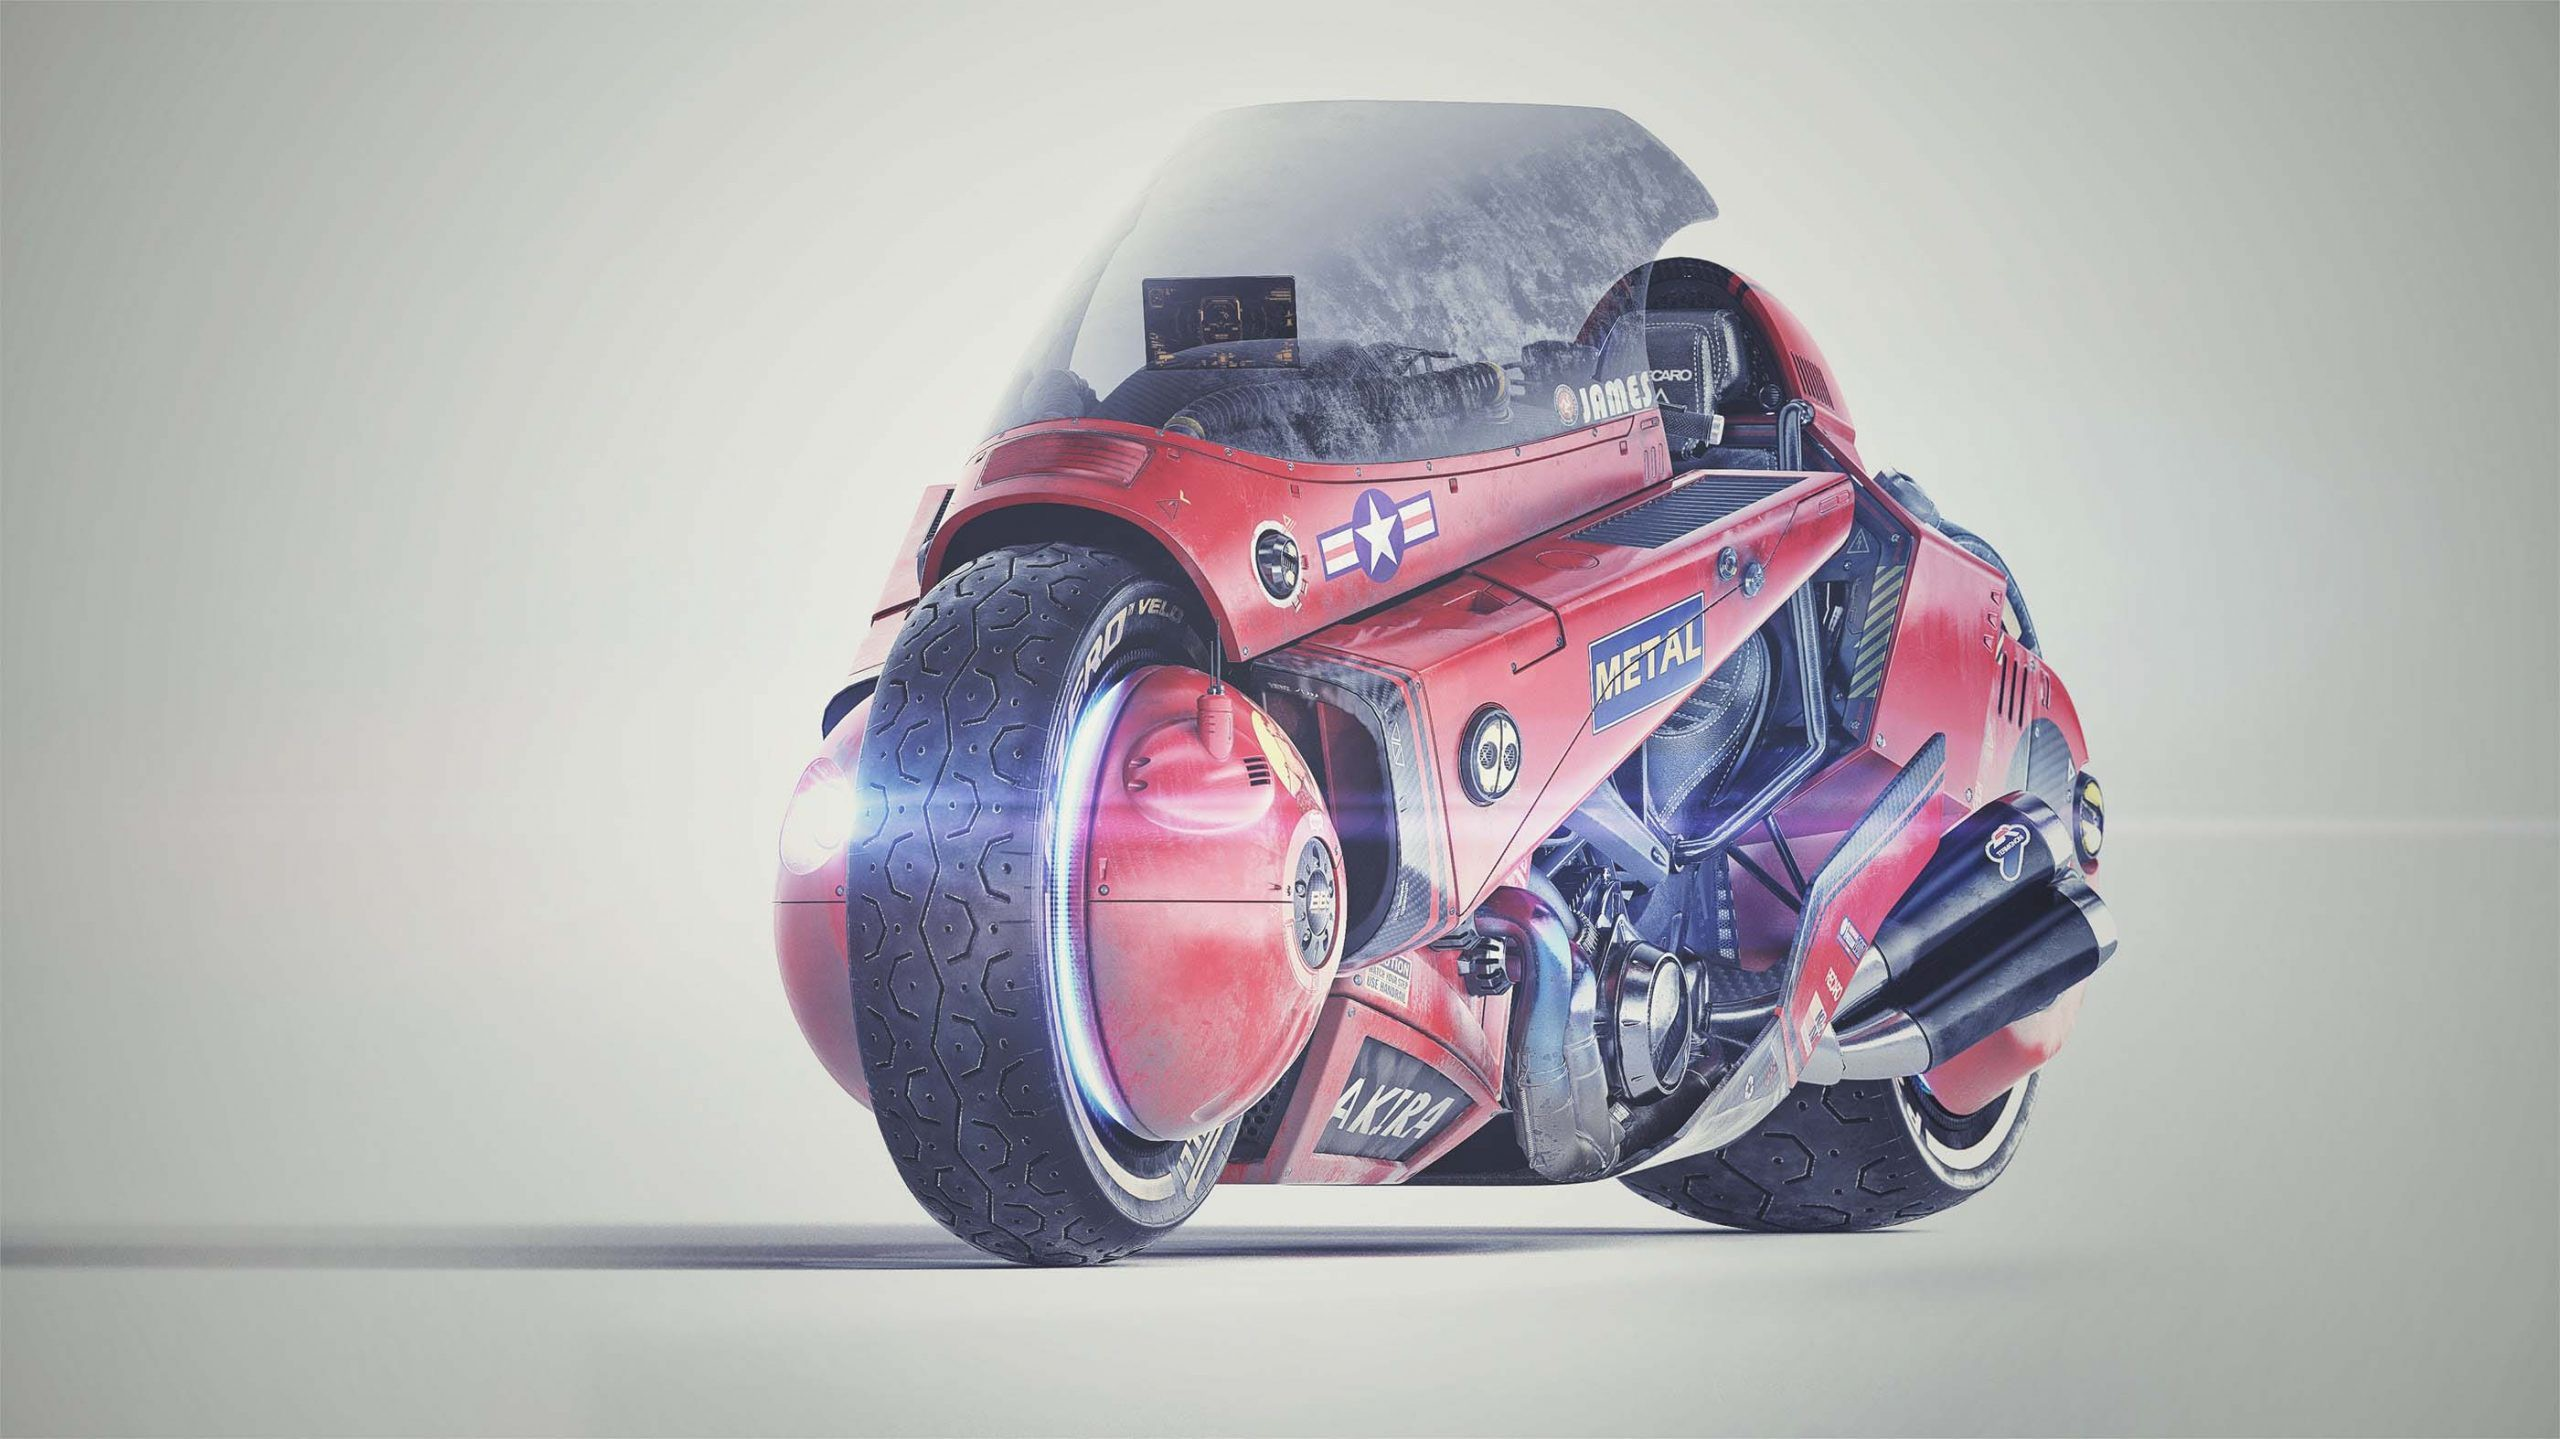 Akira motorcycle concept James Qiu 02 scaled